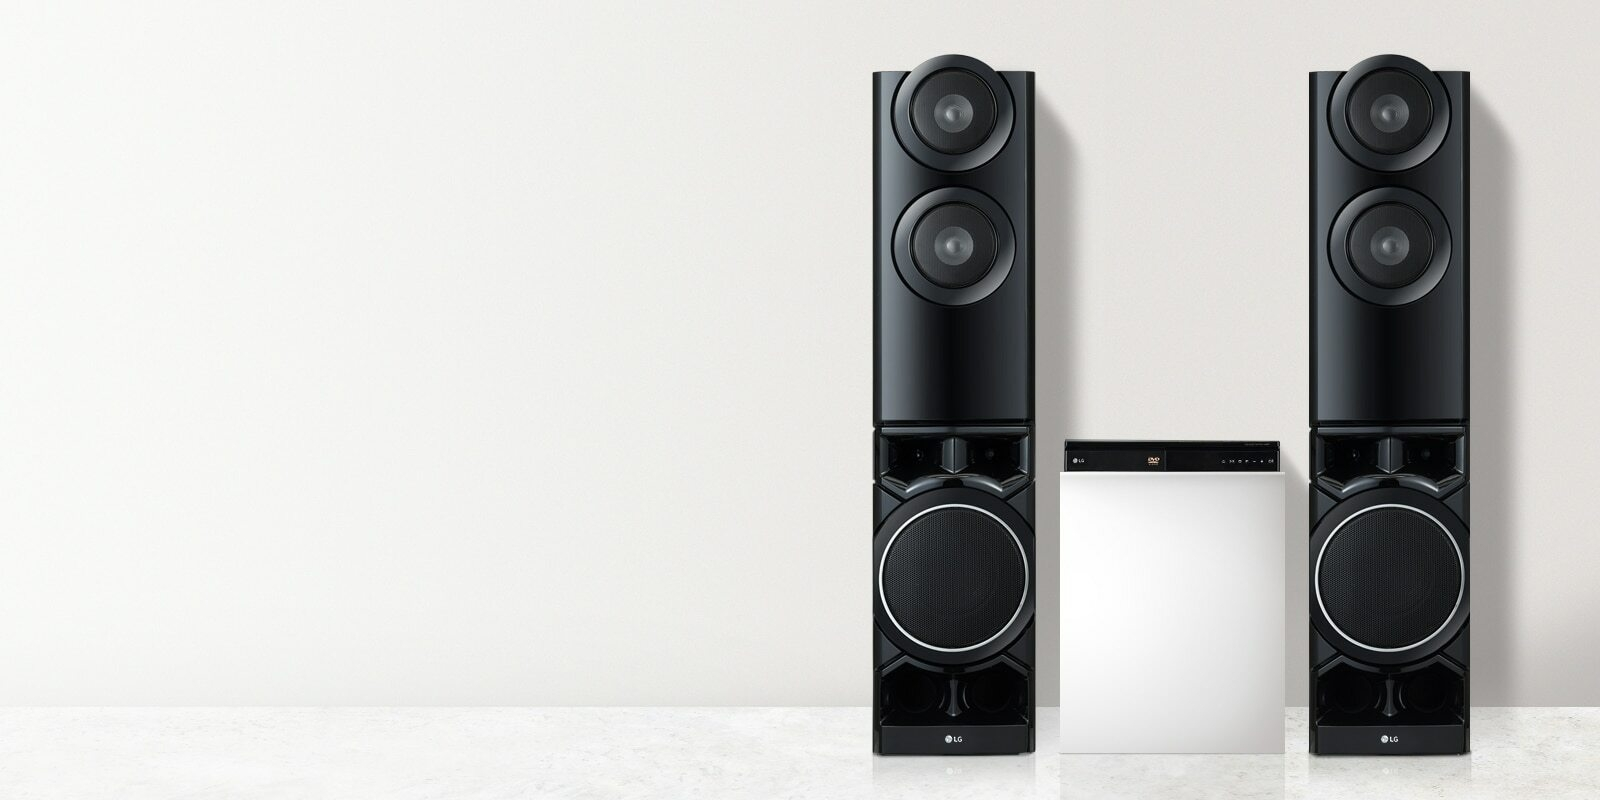 Two tower speakers and a DVD player on the platform are in the white living room.